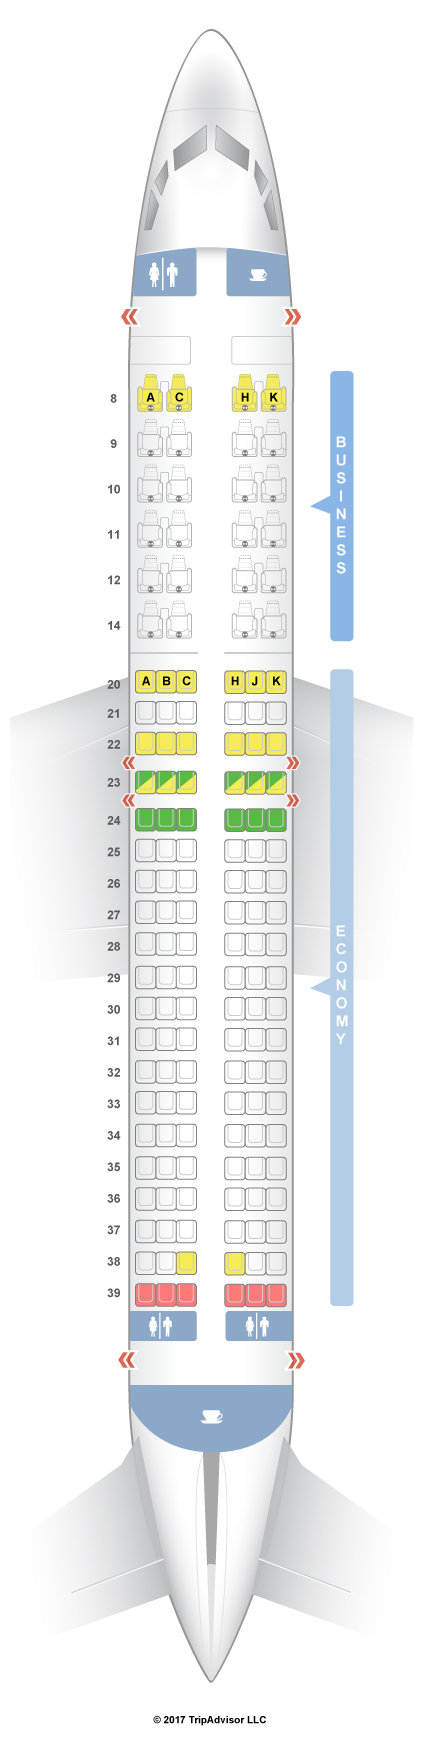 737-800 Seat Map SeatGuru Seat Map Egyptair Boeing 737 800 (738) V1 737-800 Seat Map